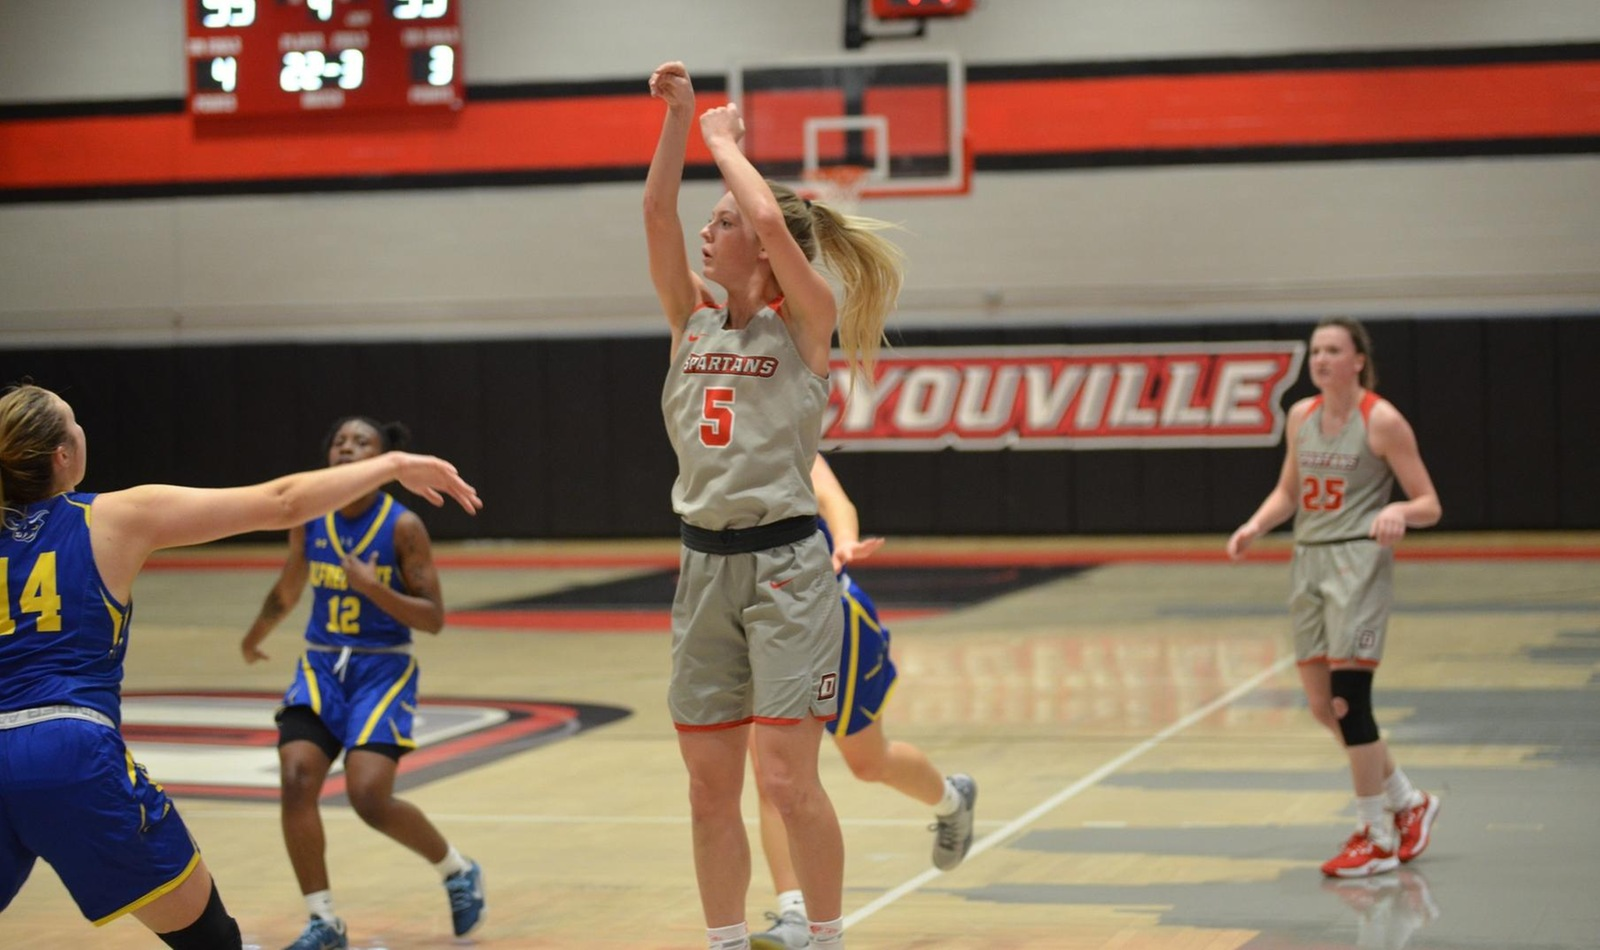 Huge Fourth Quarter Puts D'Youville over Alfred State